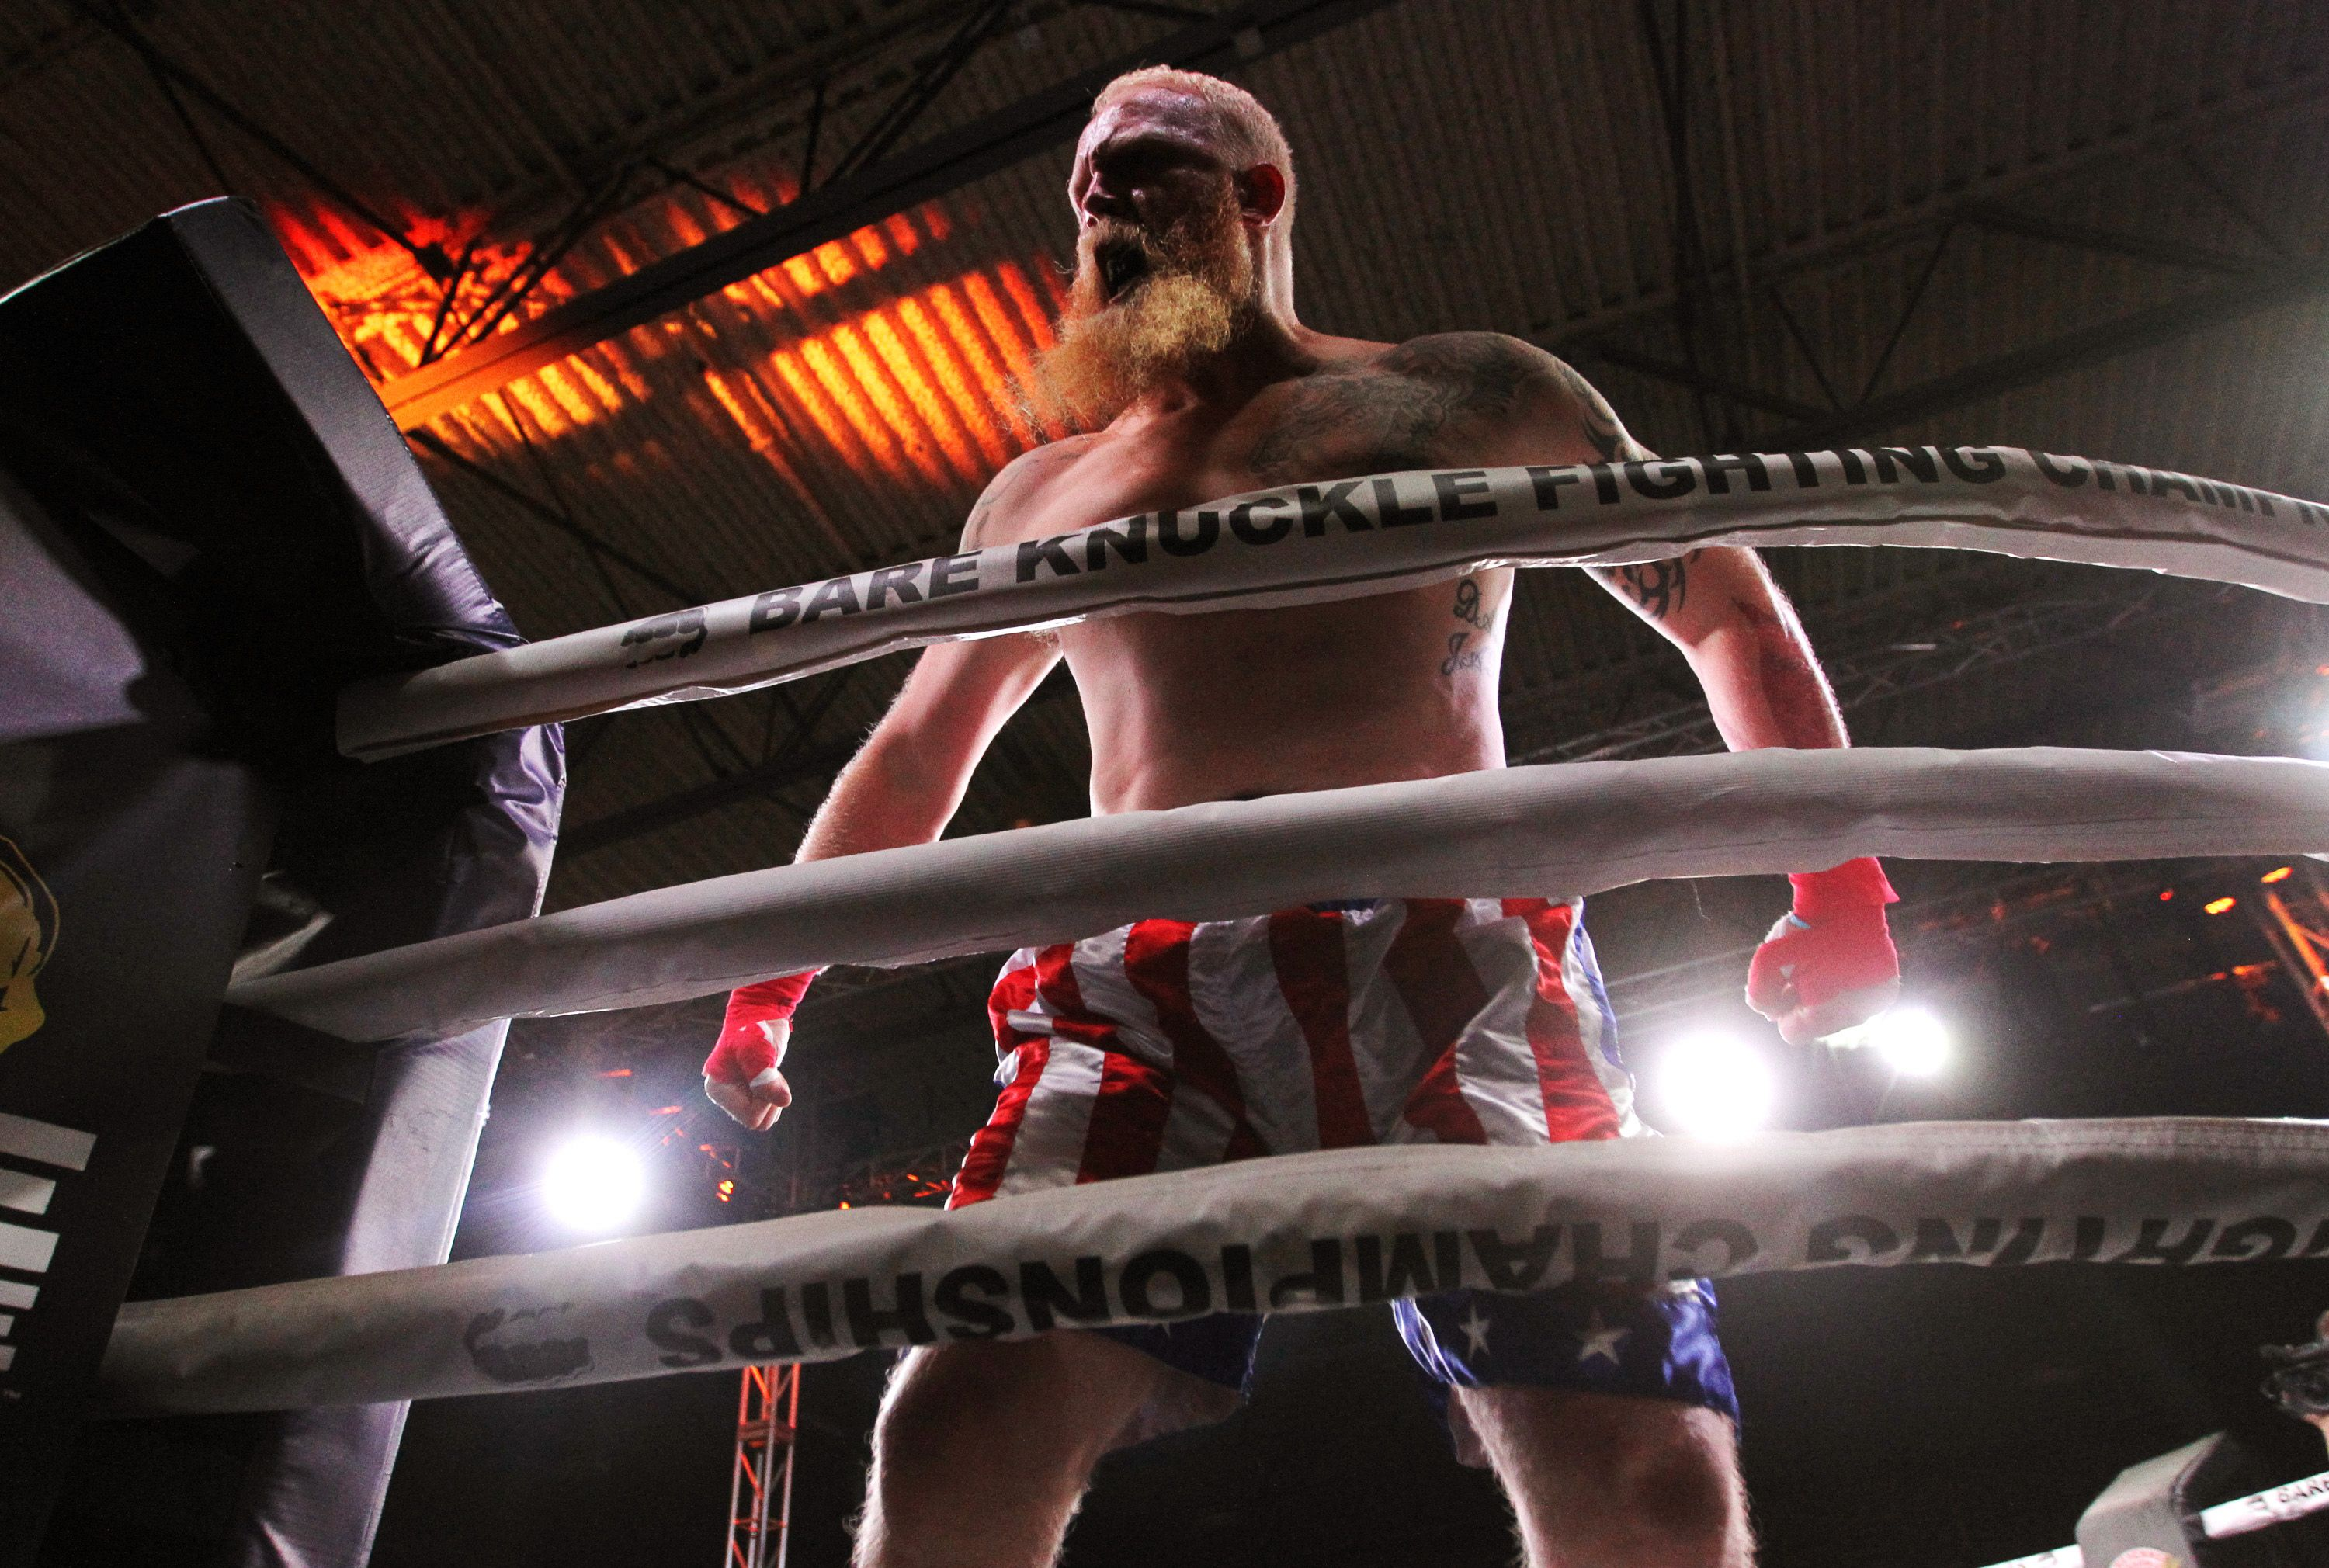 Legal Bare Knuckle Boxing Debut in Wyoming - Inside Bobby